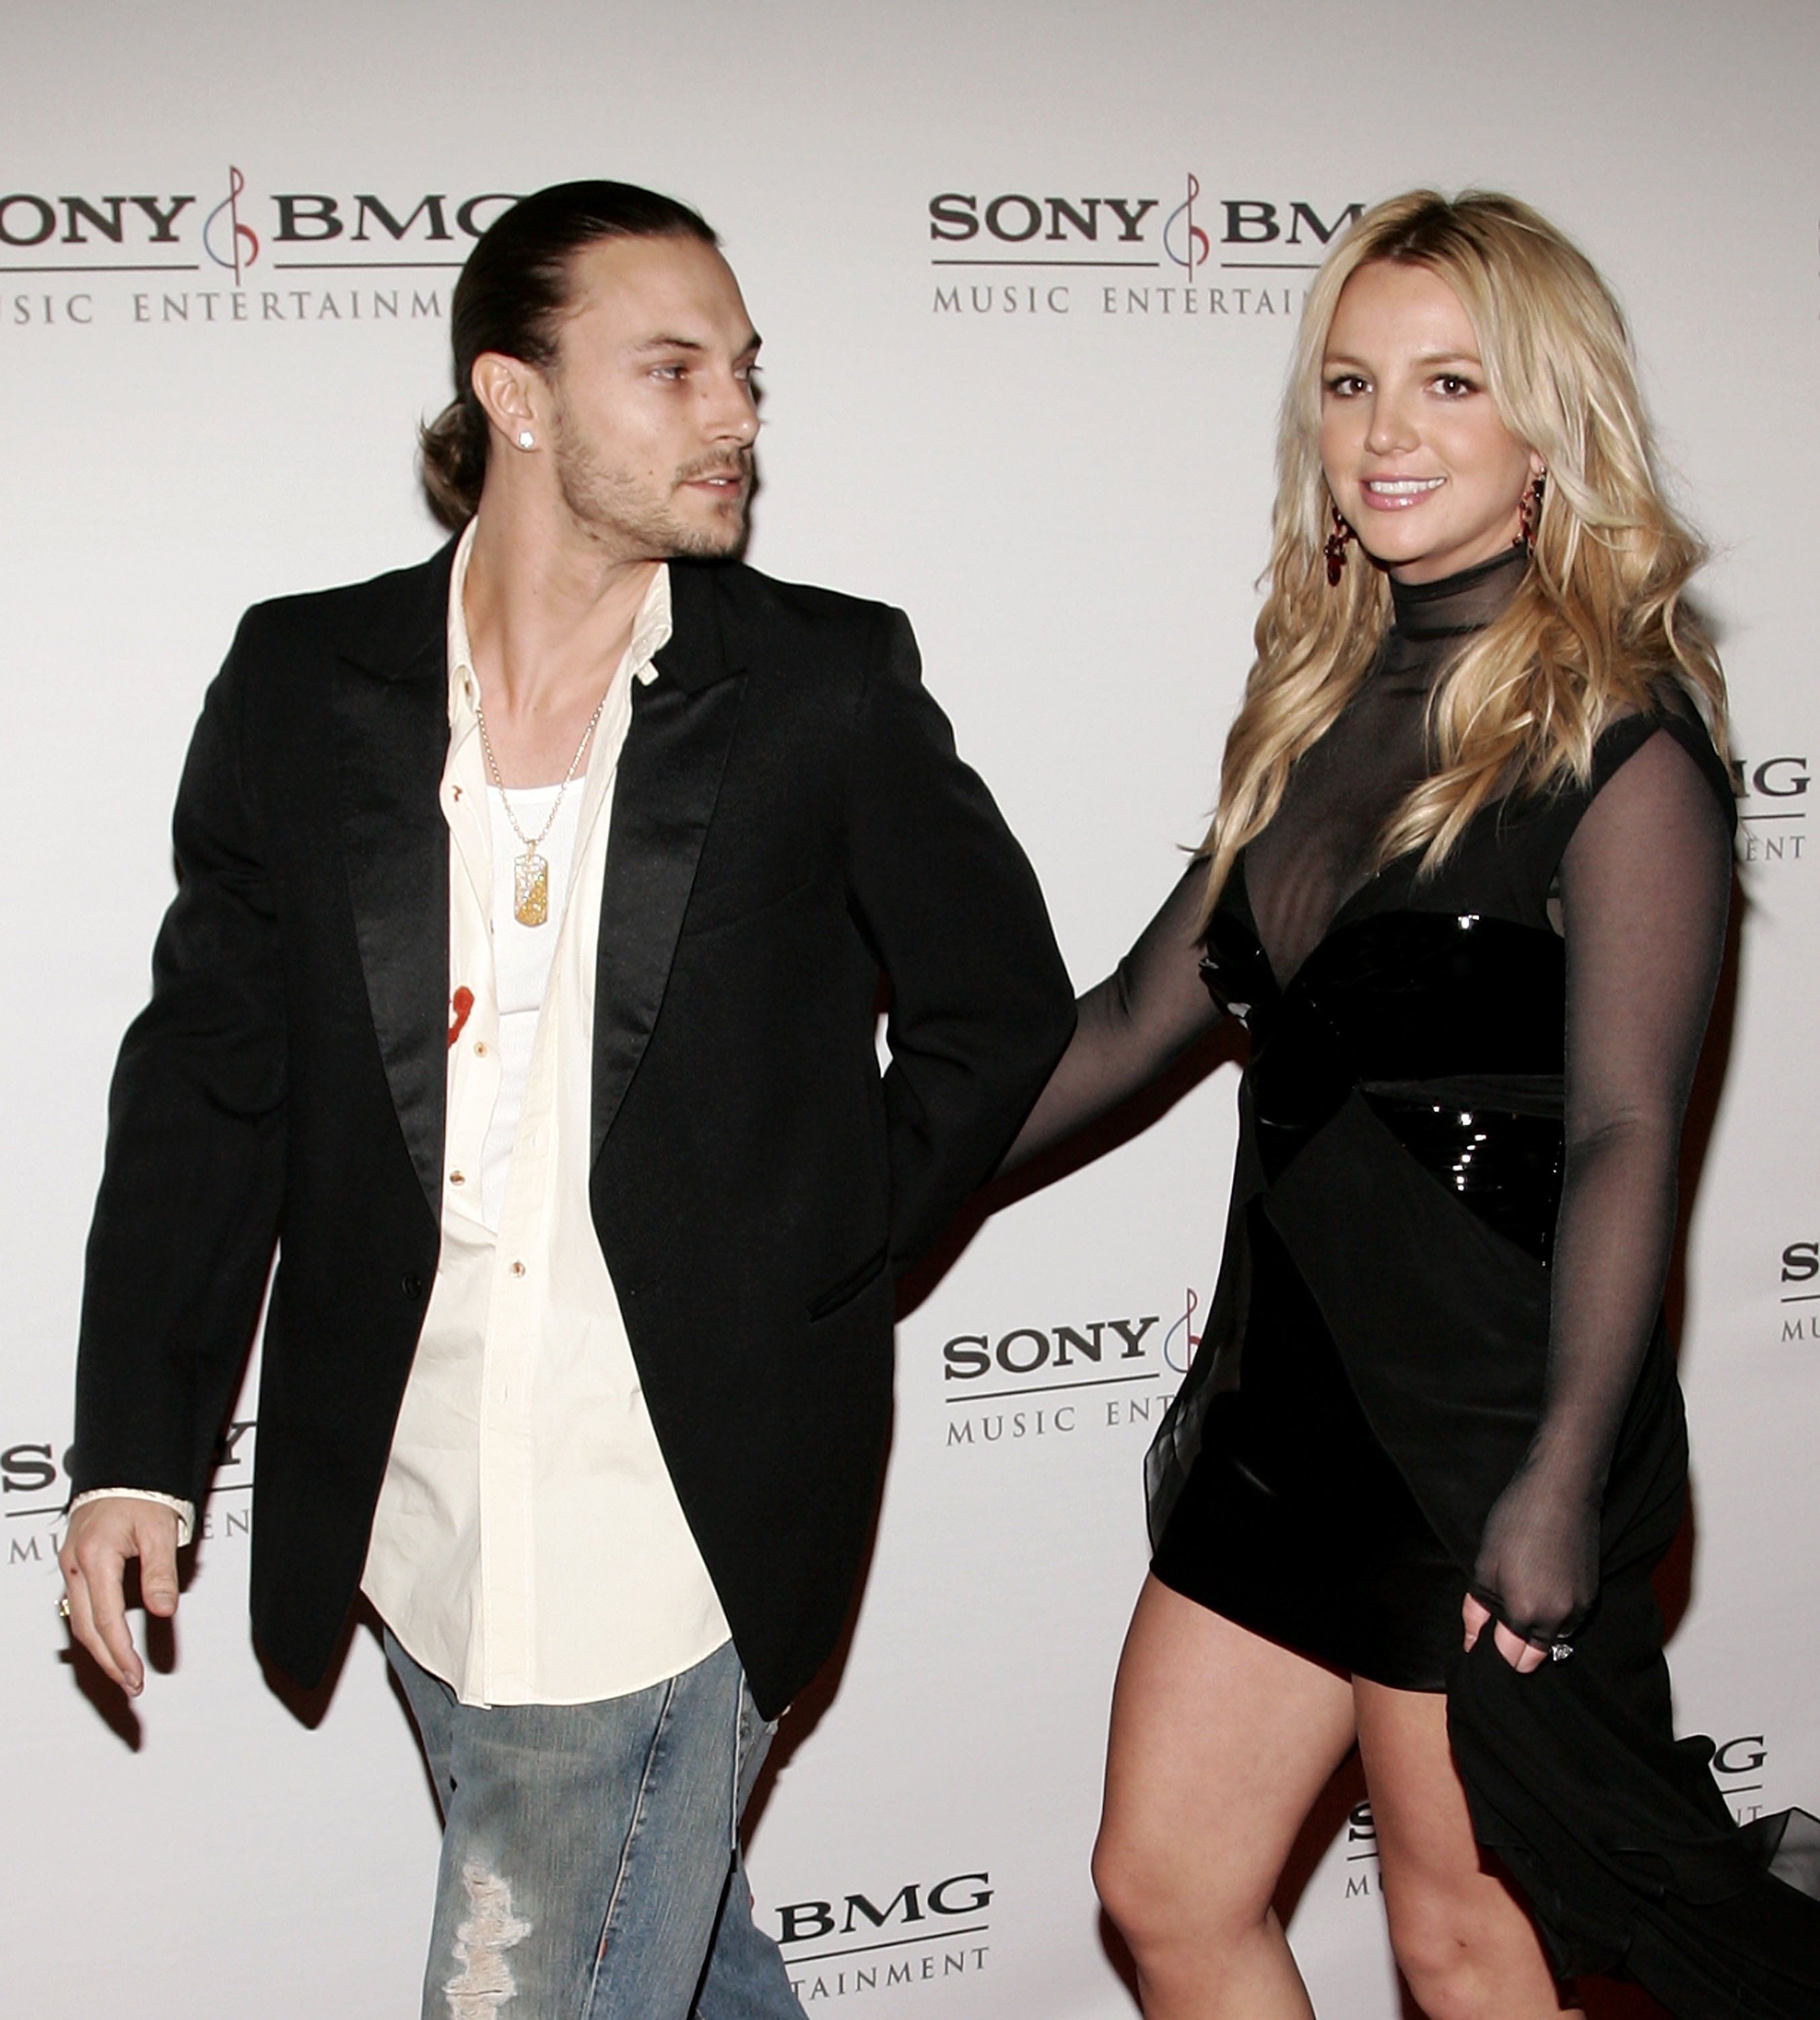 inger Britney Spears and husband Kevin Federline arrive at the SONY BMG Grammy Party. | Source: Getty Images